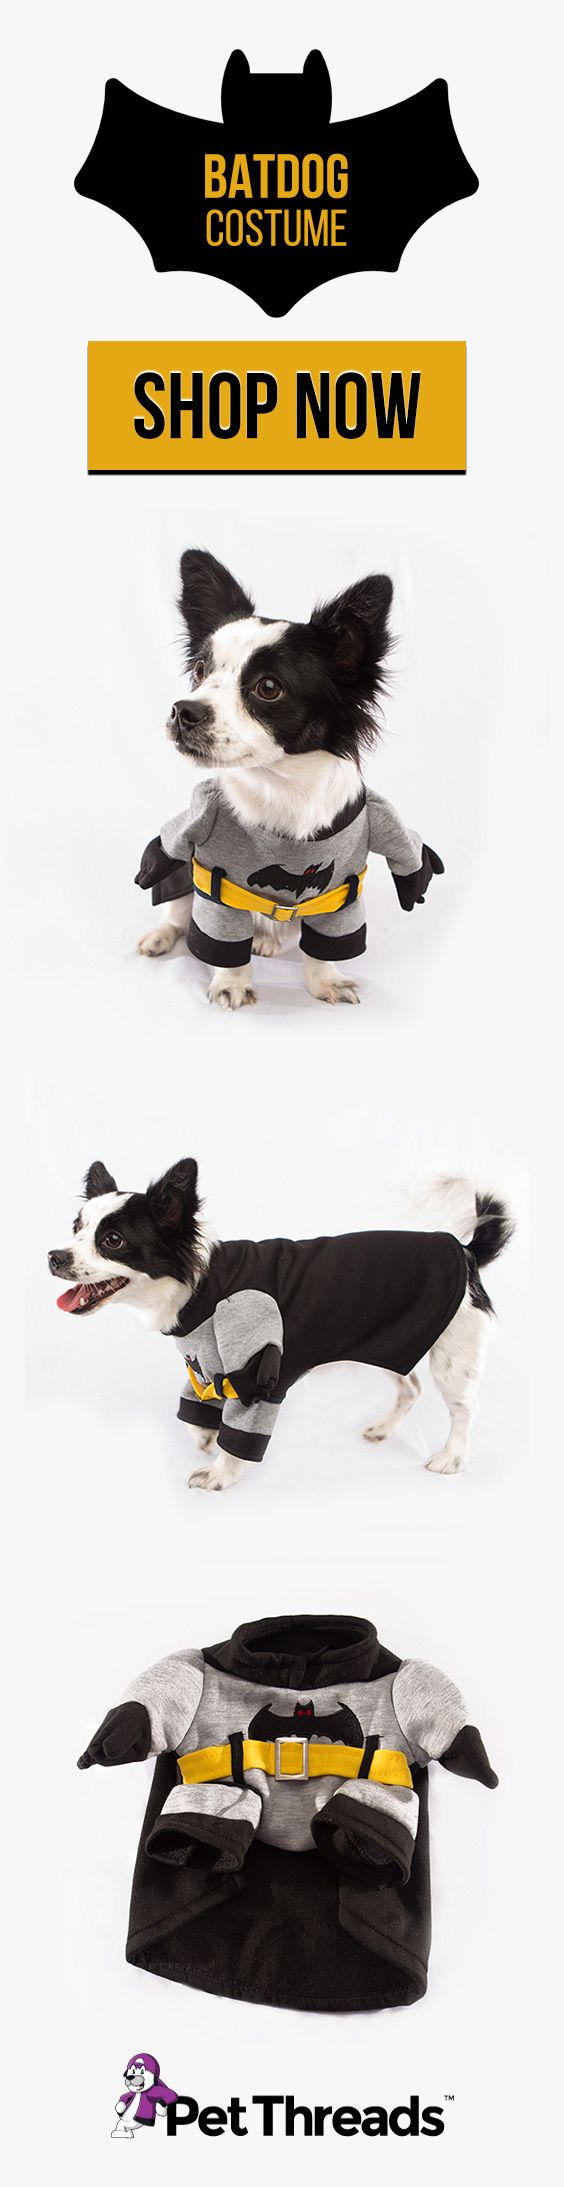 Turn your Dog into a superhero with The Batman Dog Costume by Pet Threads! Boasting a design that features a flowing cape, yellow belt and bat symbol, the costume is a novelty way of keeping your Dog warm. The Batman Dog Costume also has a drawstring collar for secure wear.  #batdog #batman #dogs #dogcostumes #dogoutfits